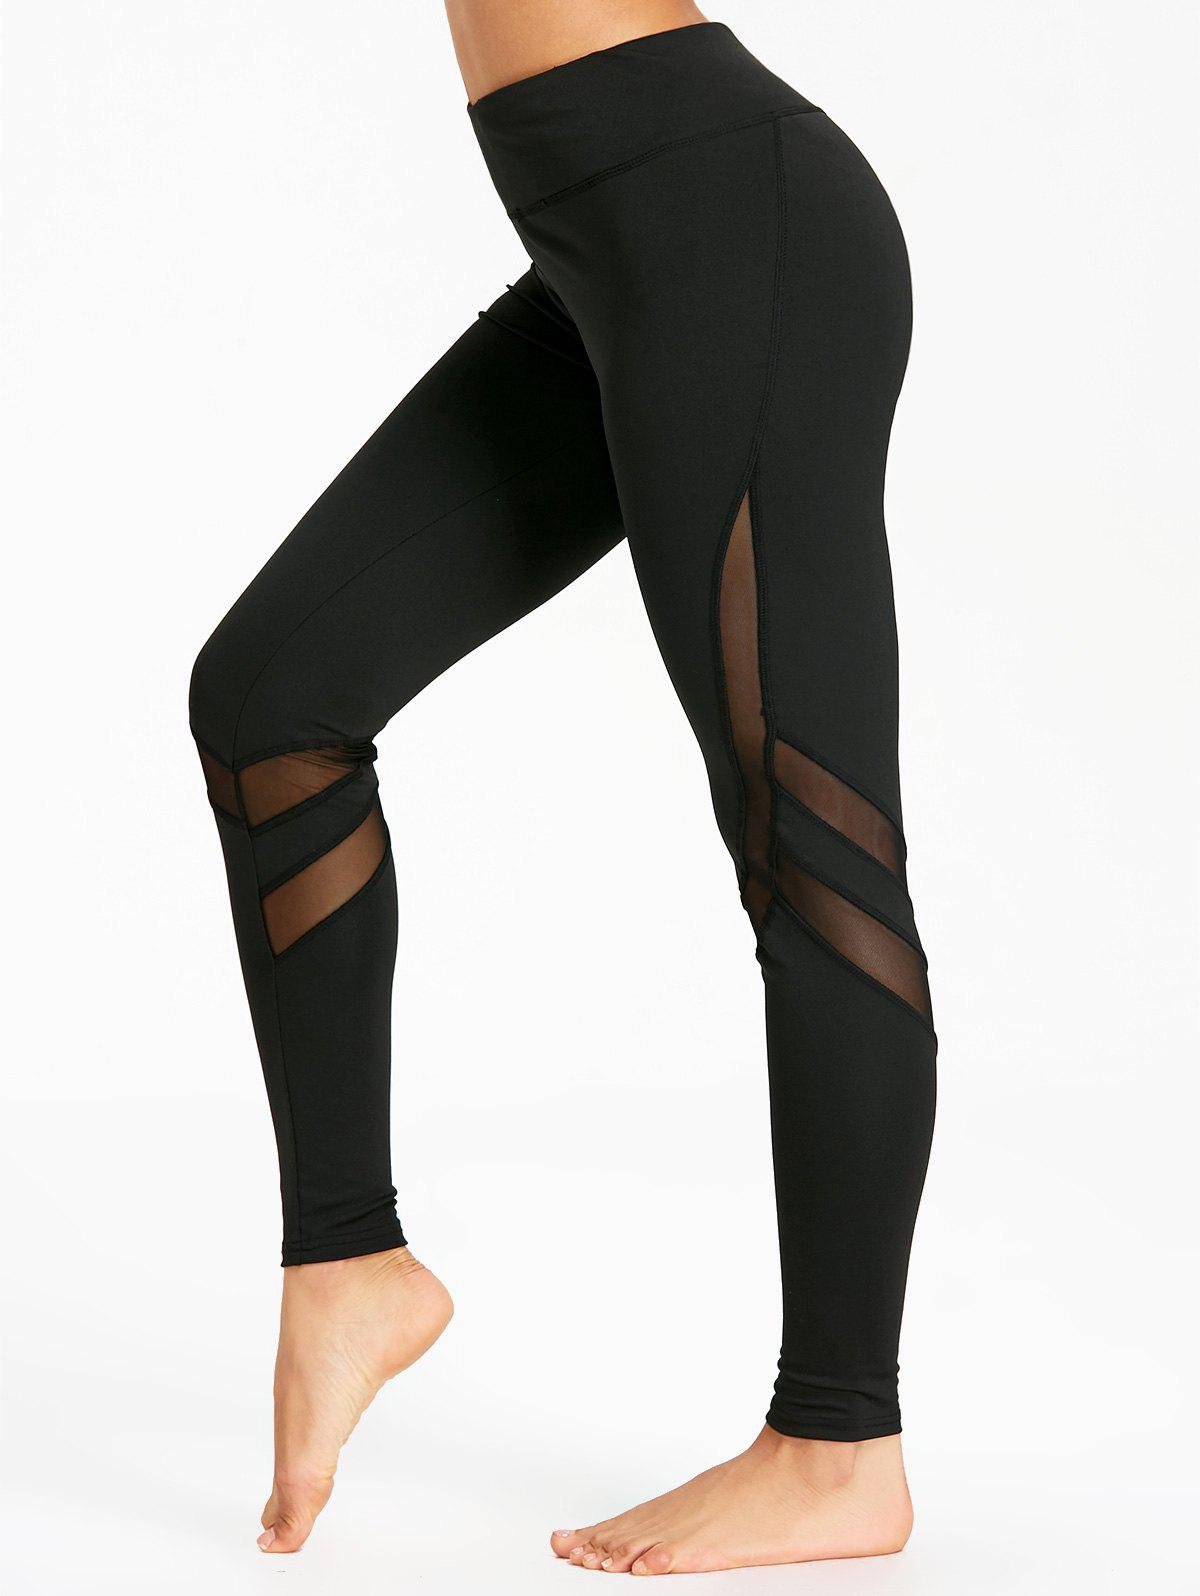 Unique High Rise Workout Leggings with Mesh Panel